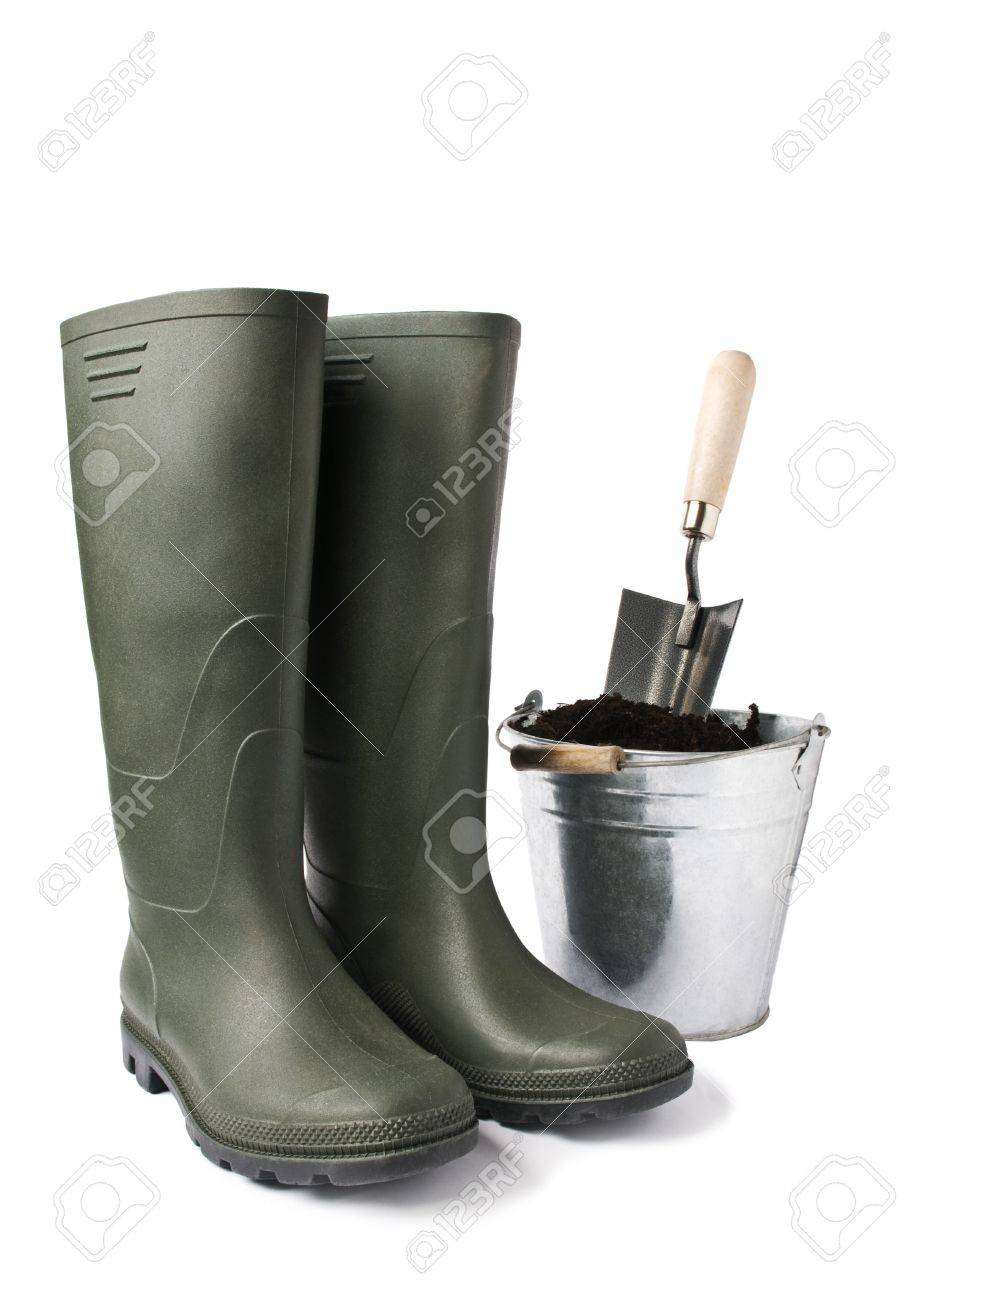 garden boots and bucket with soil isolated on white stock photo